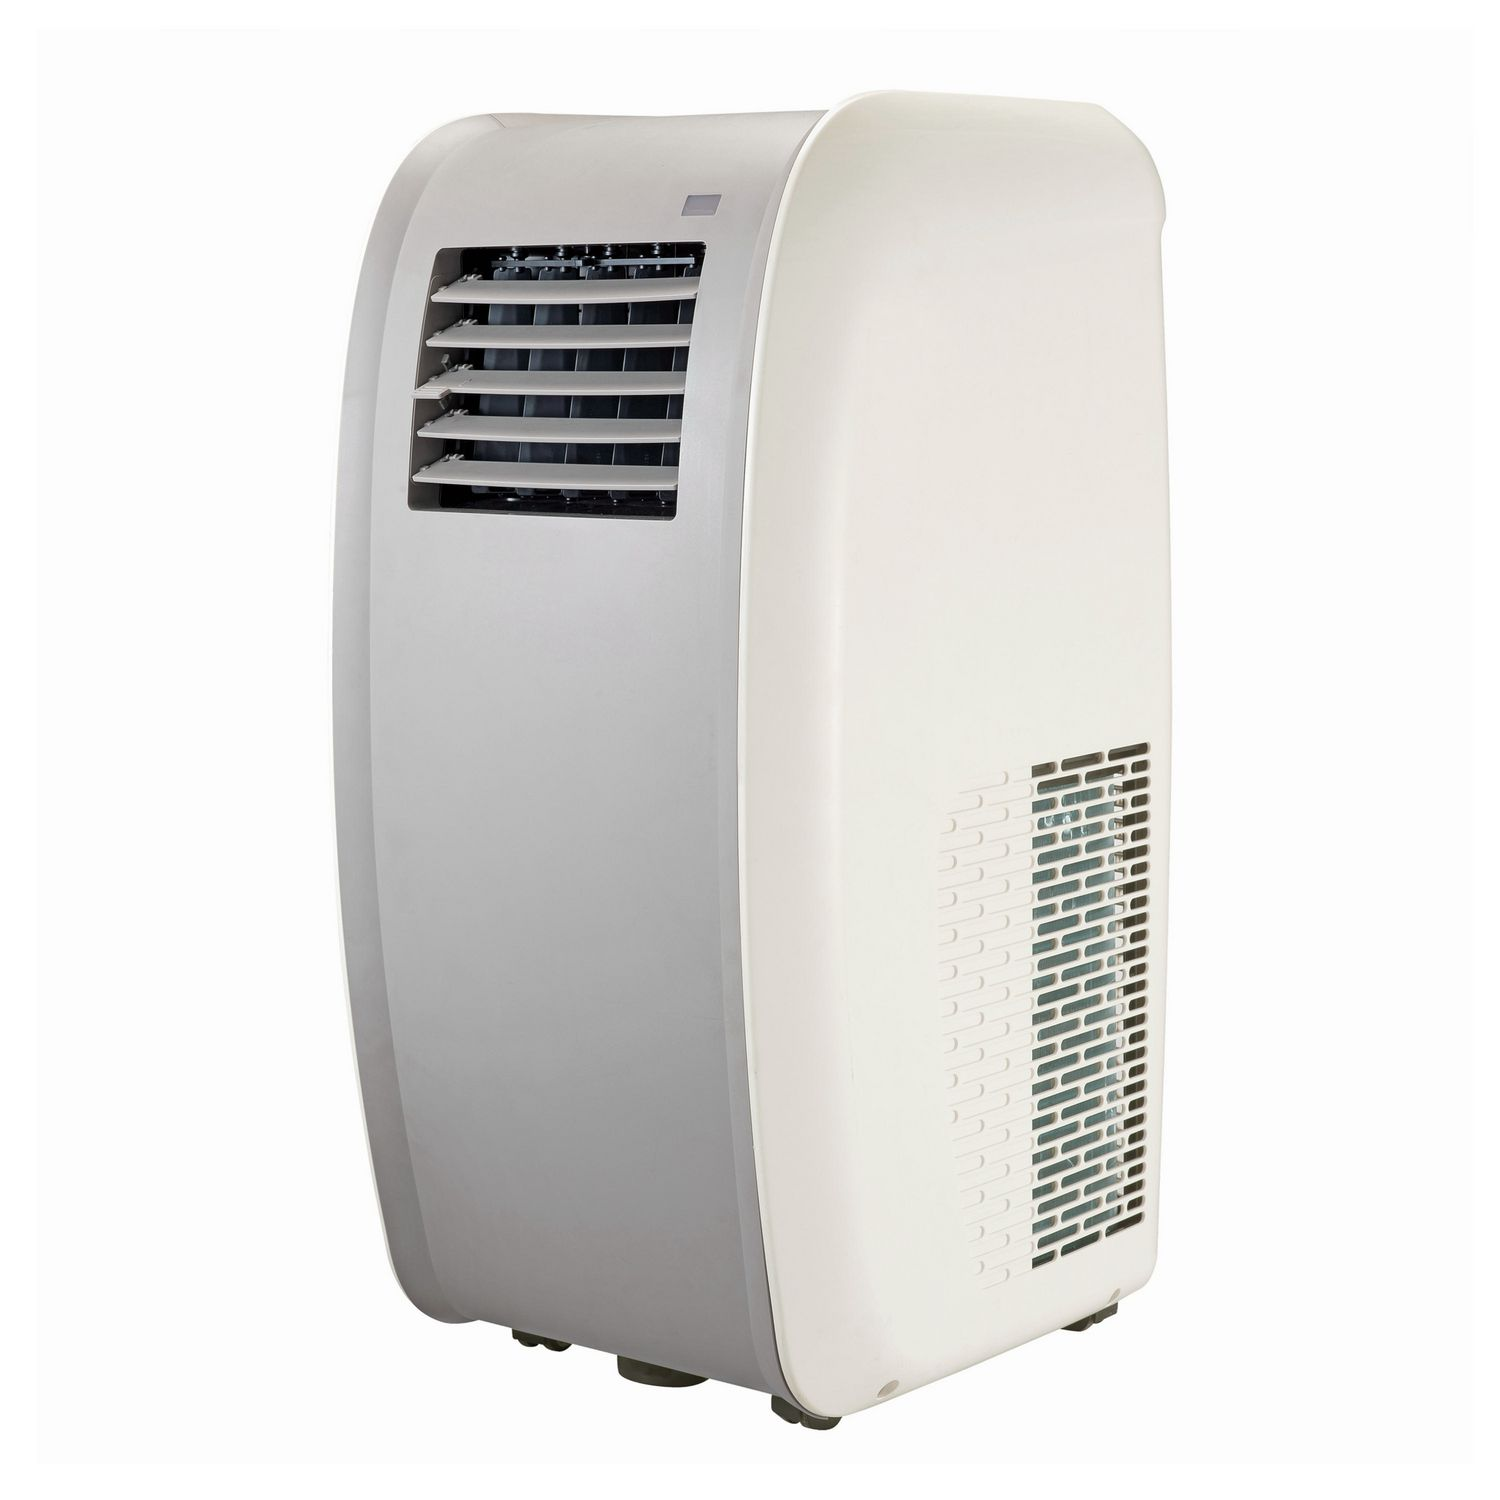 kenmore ac unit. tosot 14000 btu 700 sq. ft portable air conditioner with heater kenmore ac unit r